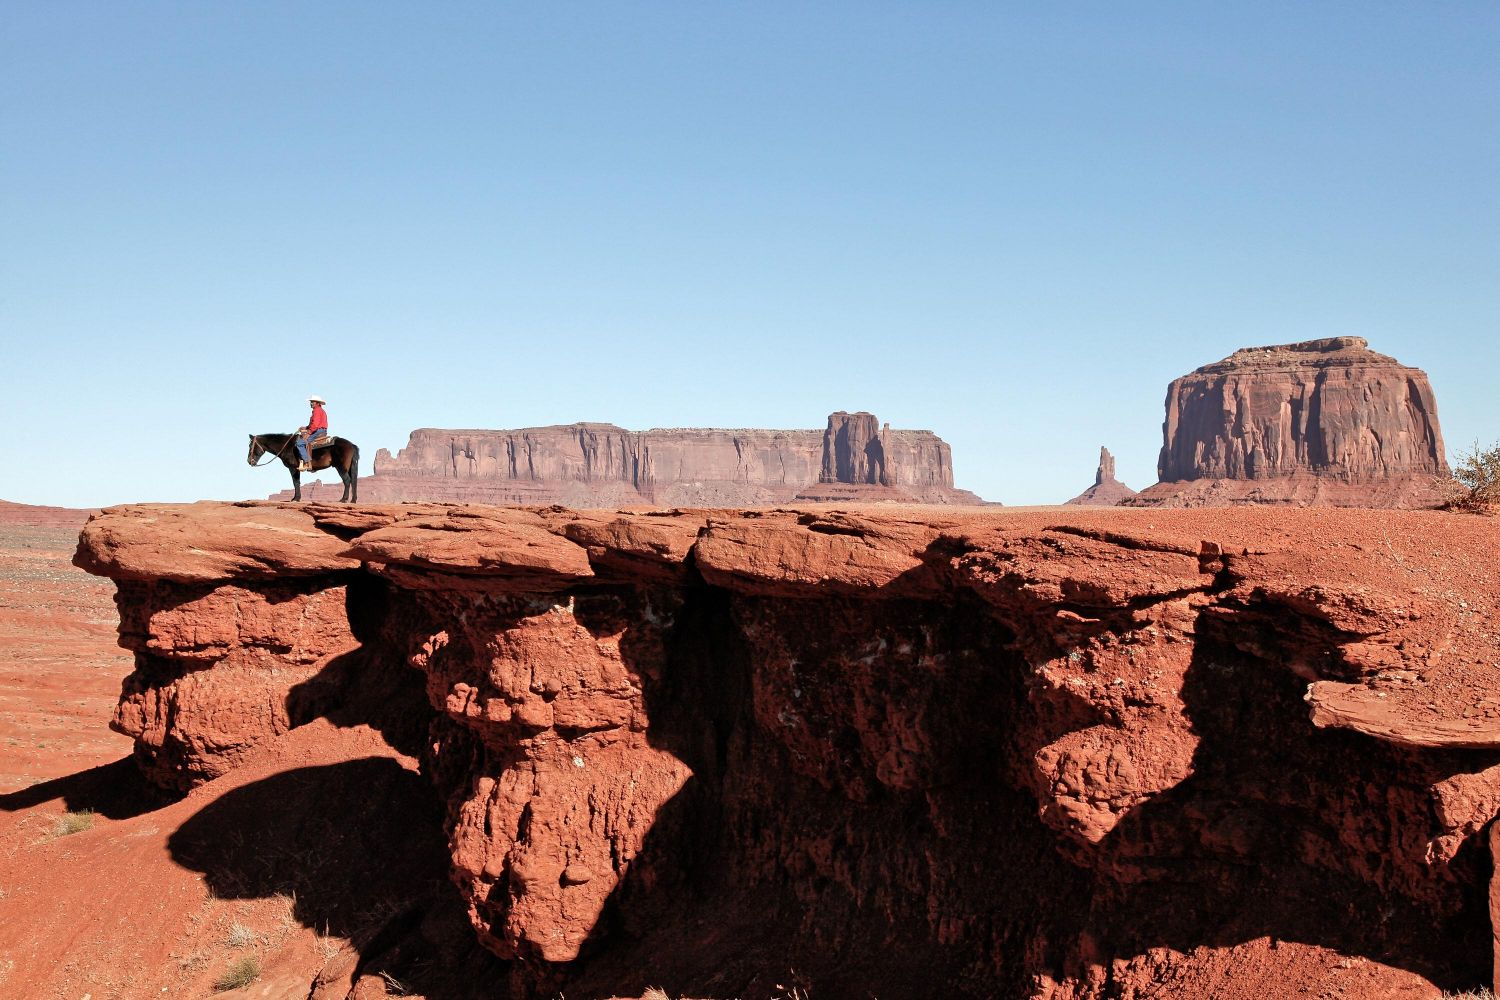 John Ford Point Overlook, Monument Valley - a Navajo Indian on Horseback